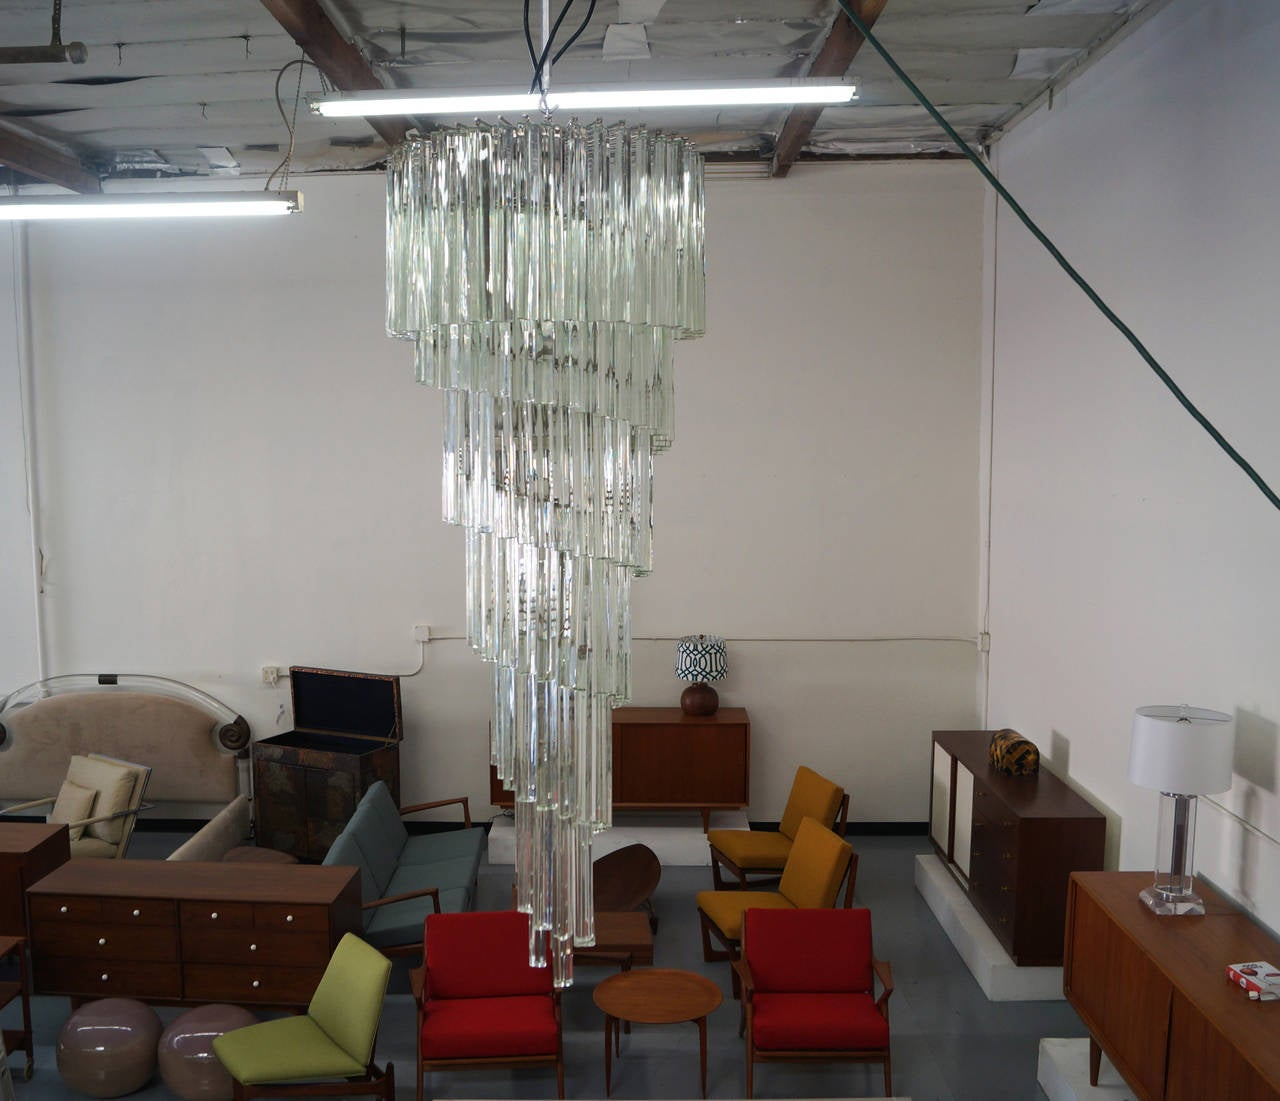 Monumental vintage spiral murano glass chandelier designed by Venini and manufactured in Italy, circa 1960s. This chandelier is made up of elegant solid glass prisms that are aesthetically arranged in the form of a spiral waterfall. Each of the